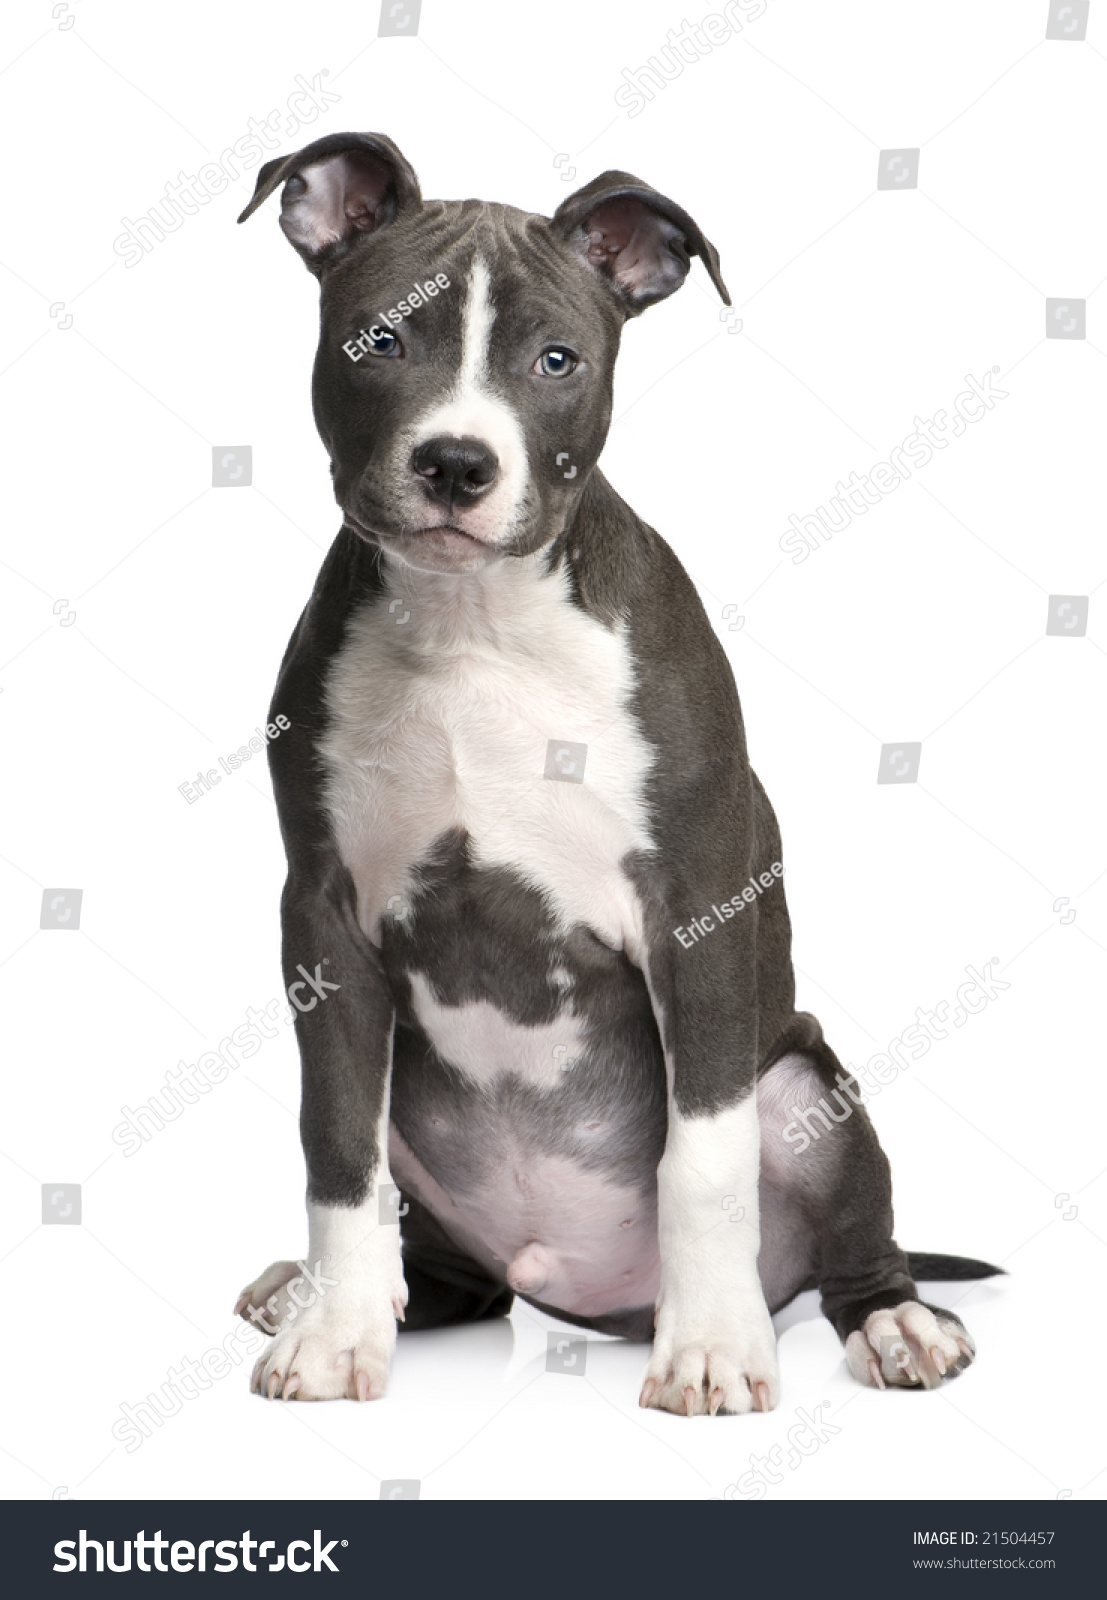 Z Force American Staffordshire Terrier American Staffordshire...